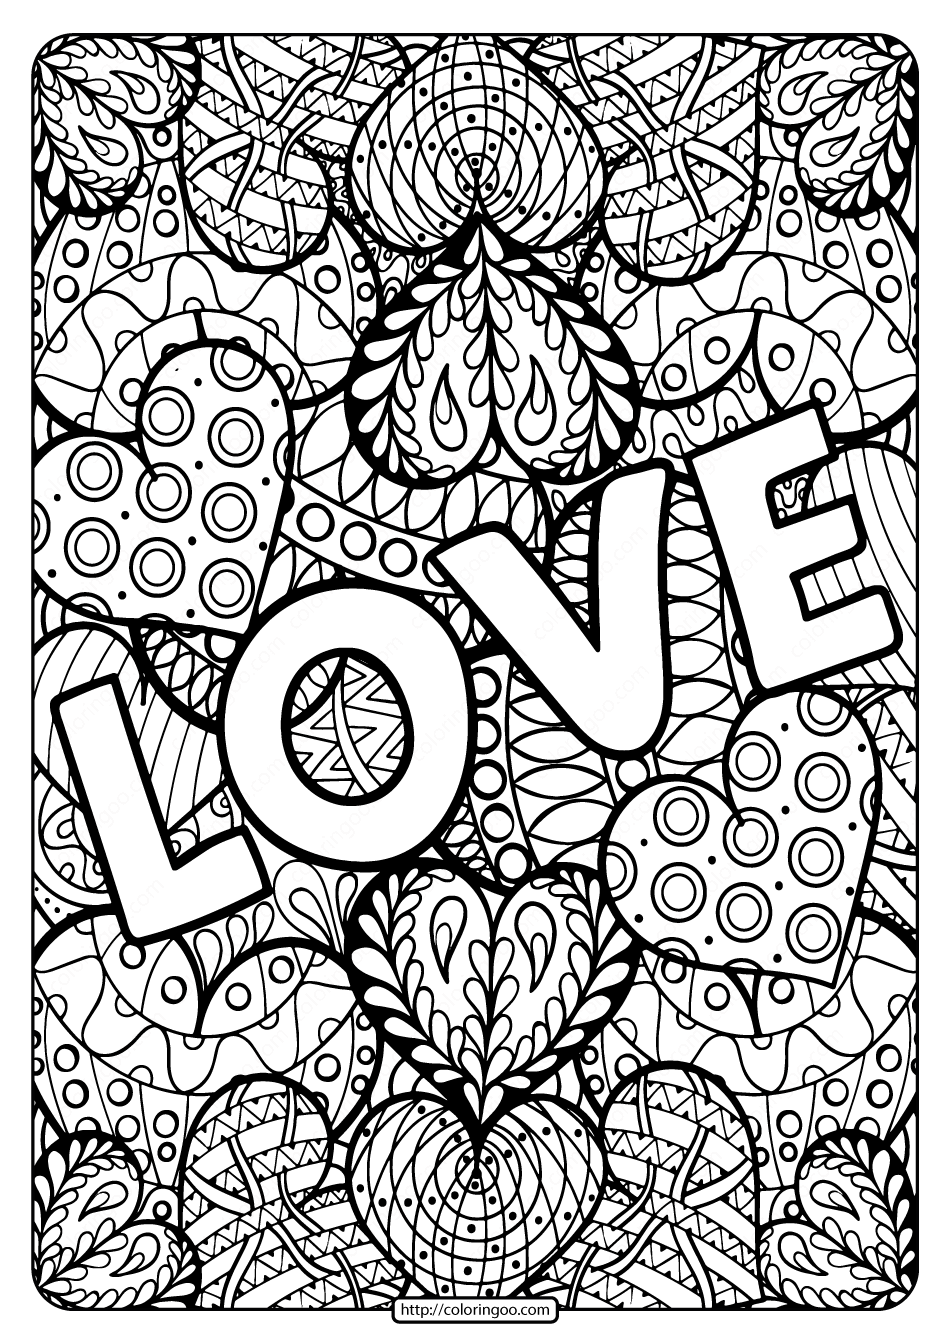 free printable coloring pages thanksgiving  »  8 Picture » Creative..!